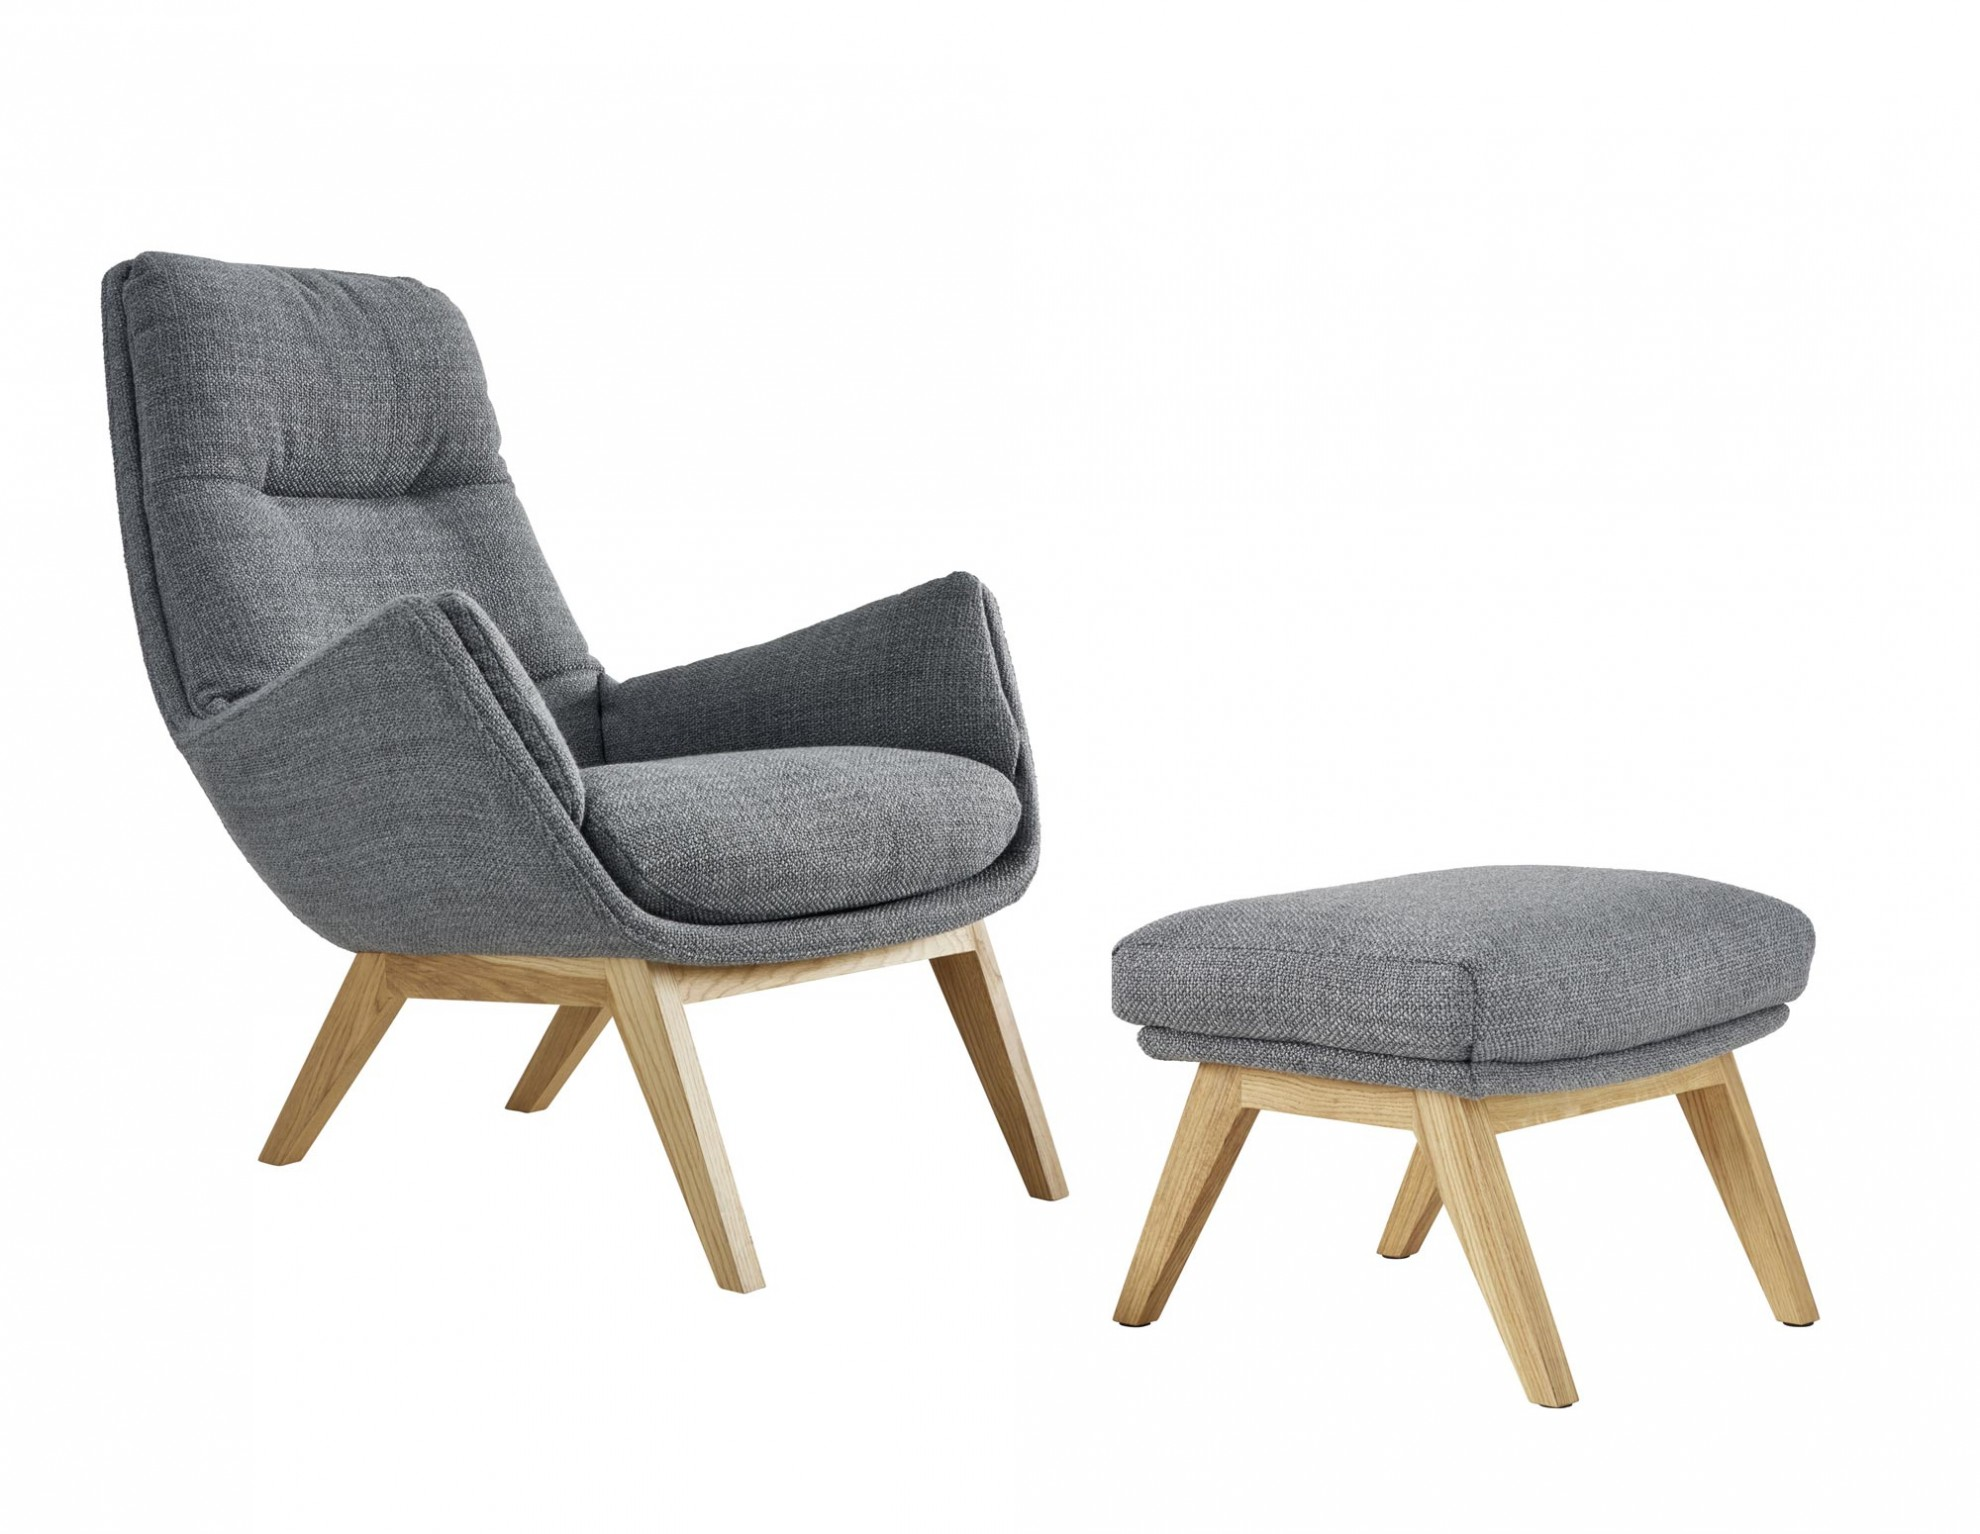 Stressless Sessel Mit Hocker Stressless Sessel Gebraucht Stressless Sessel Reno M Mit